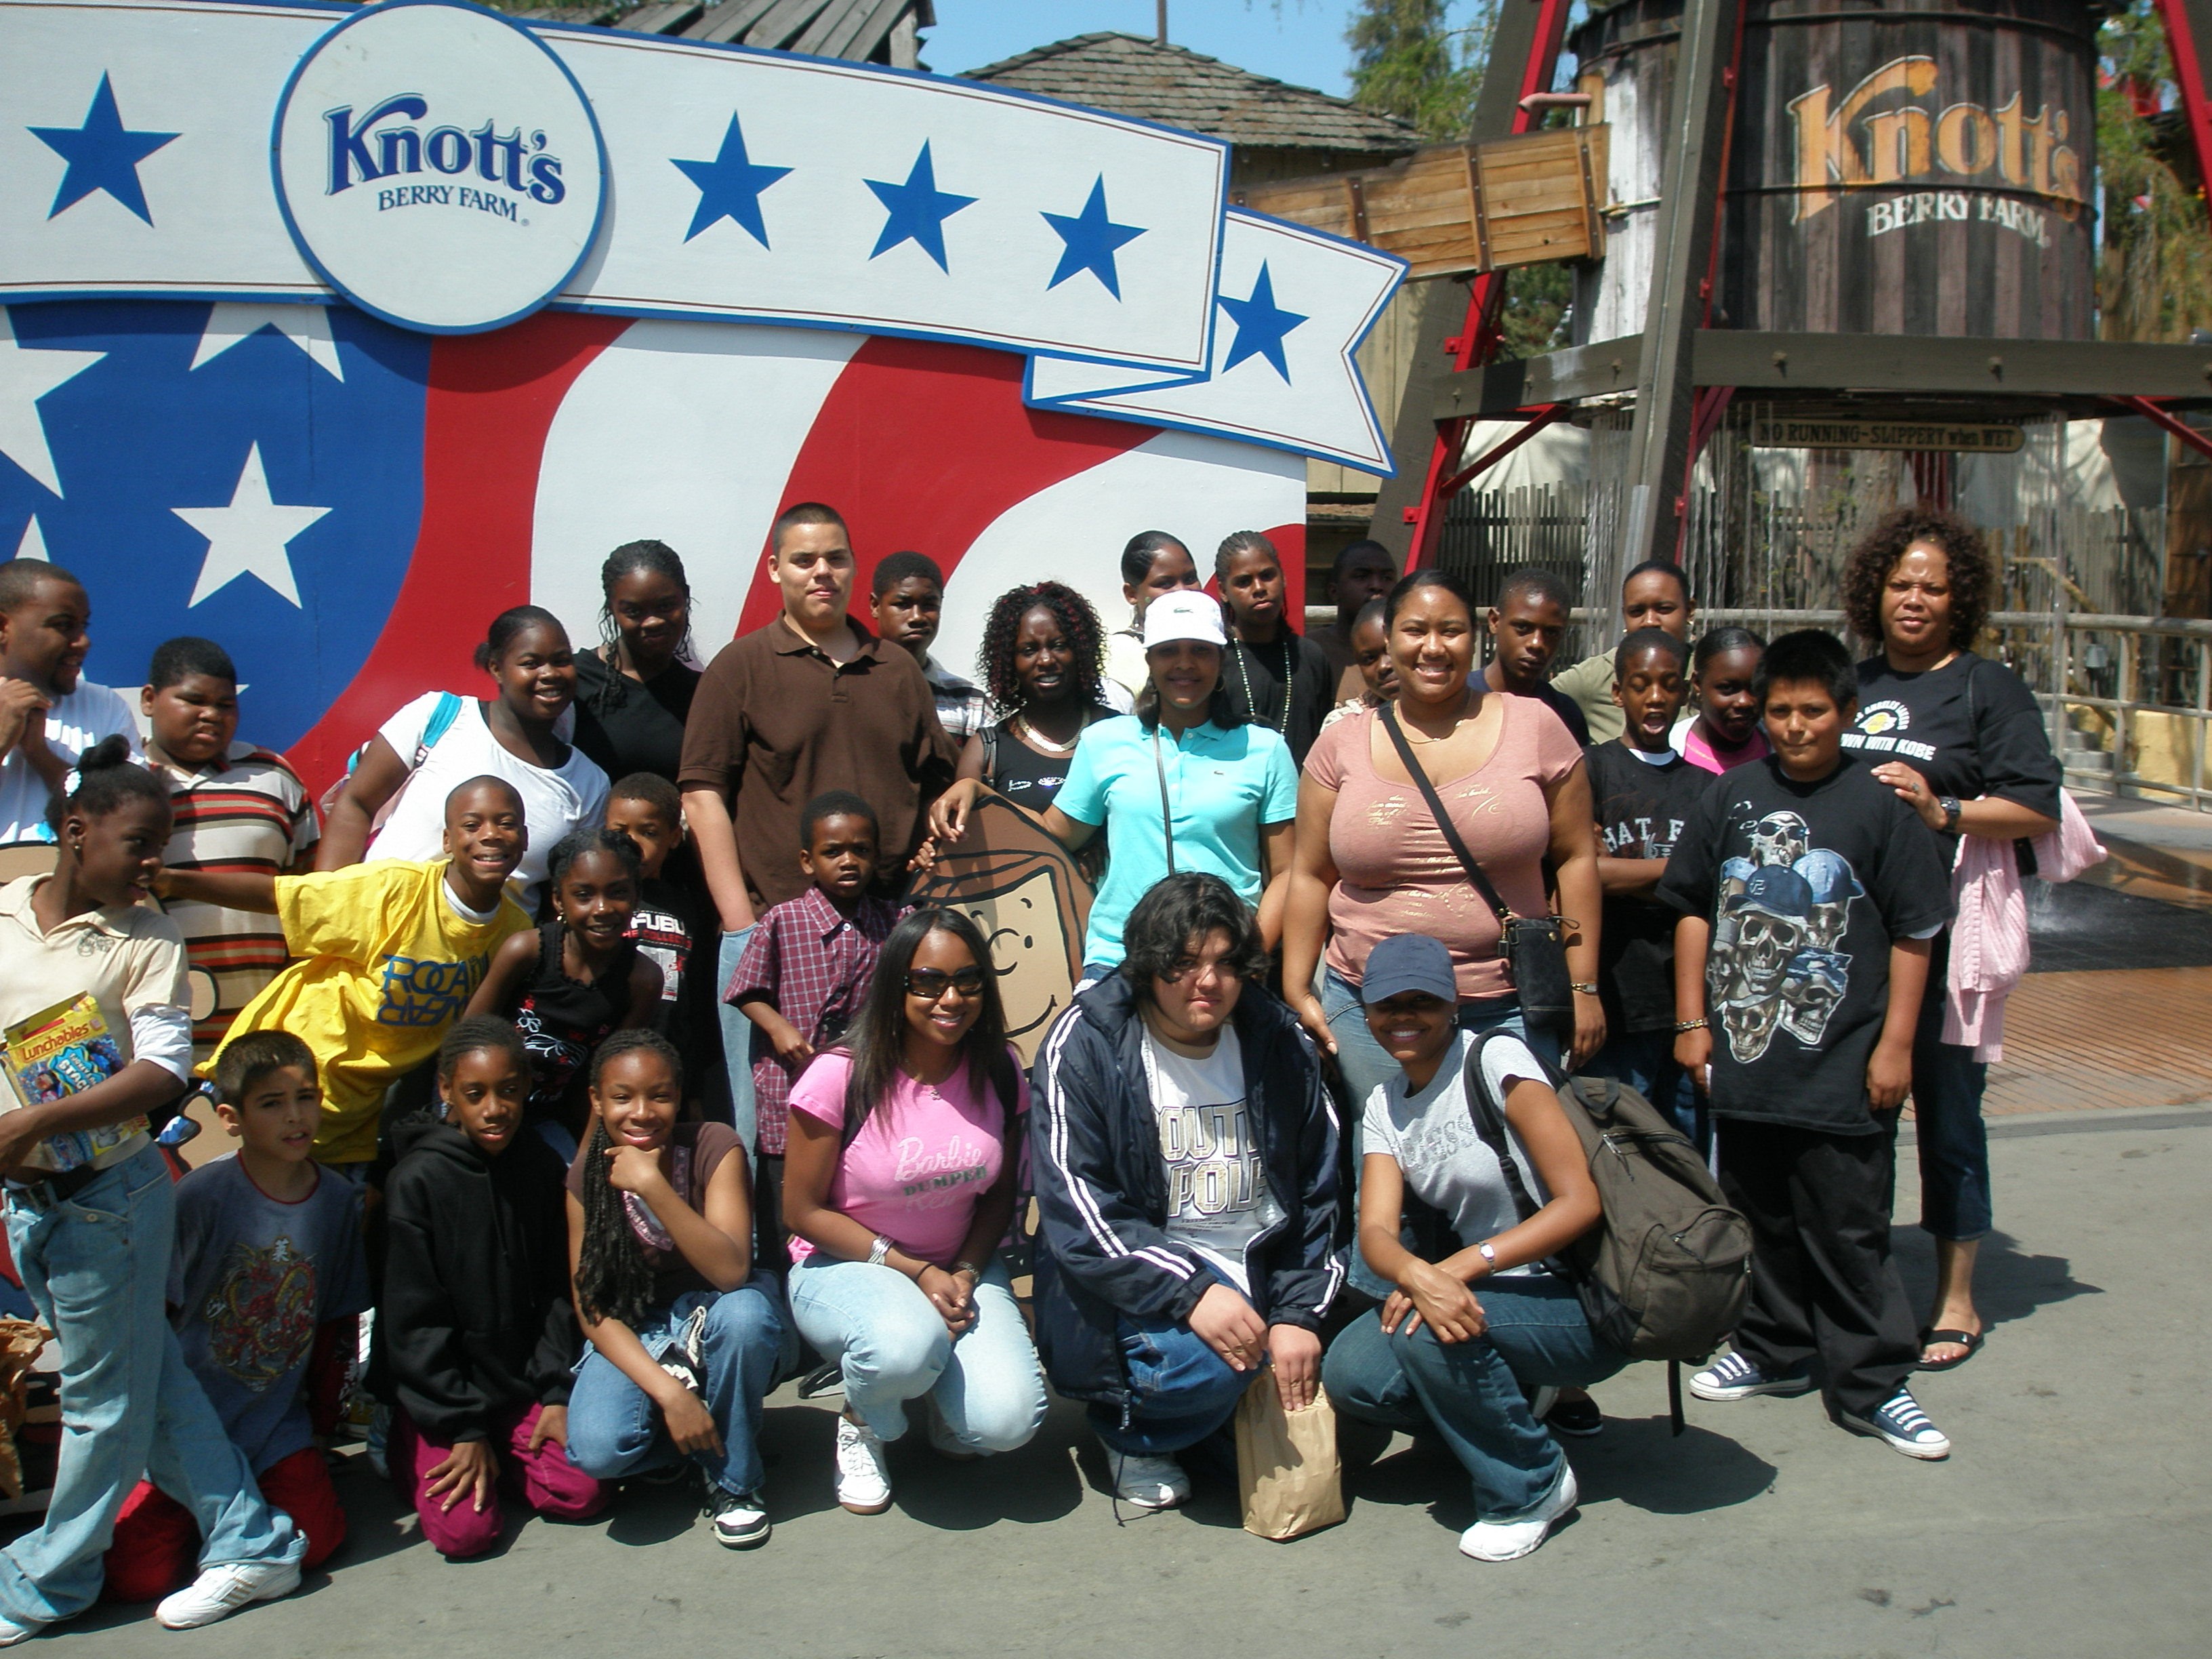 CLIENTS AT KNOTTS 1